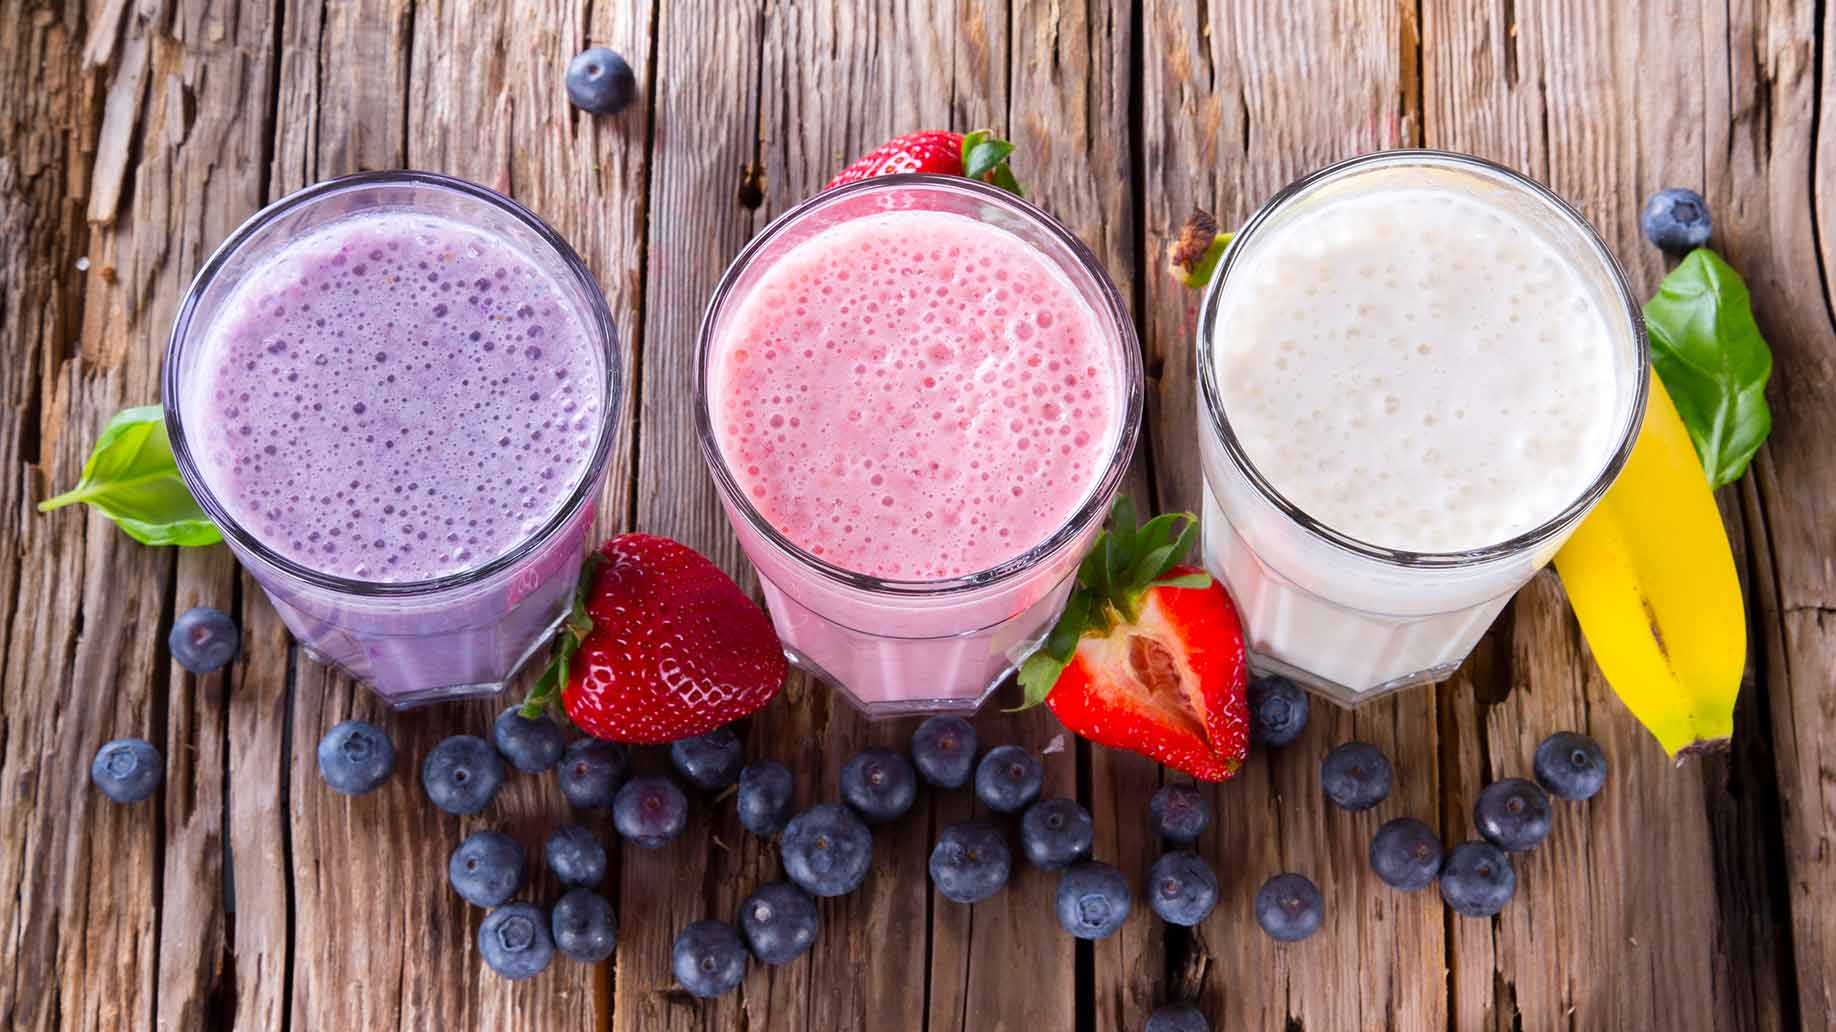 liver cleanse with smoothies juices fresh fruit